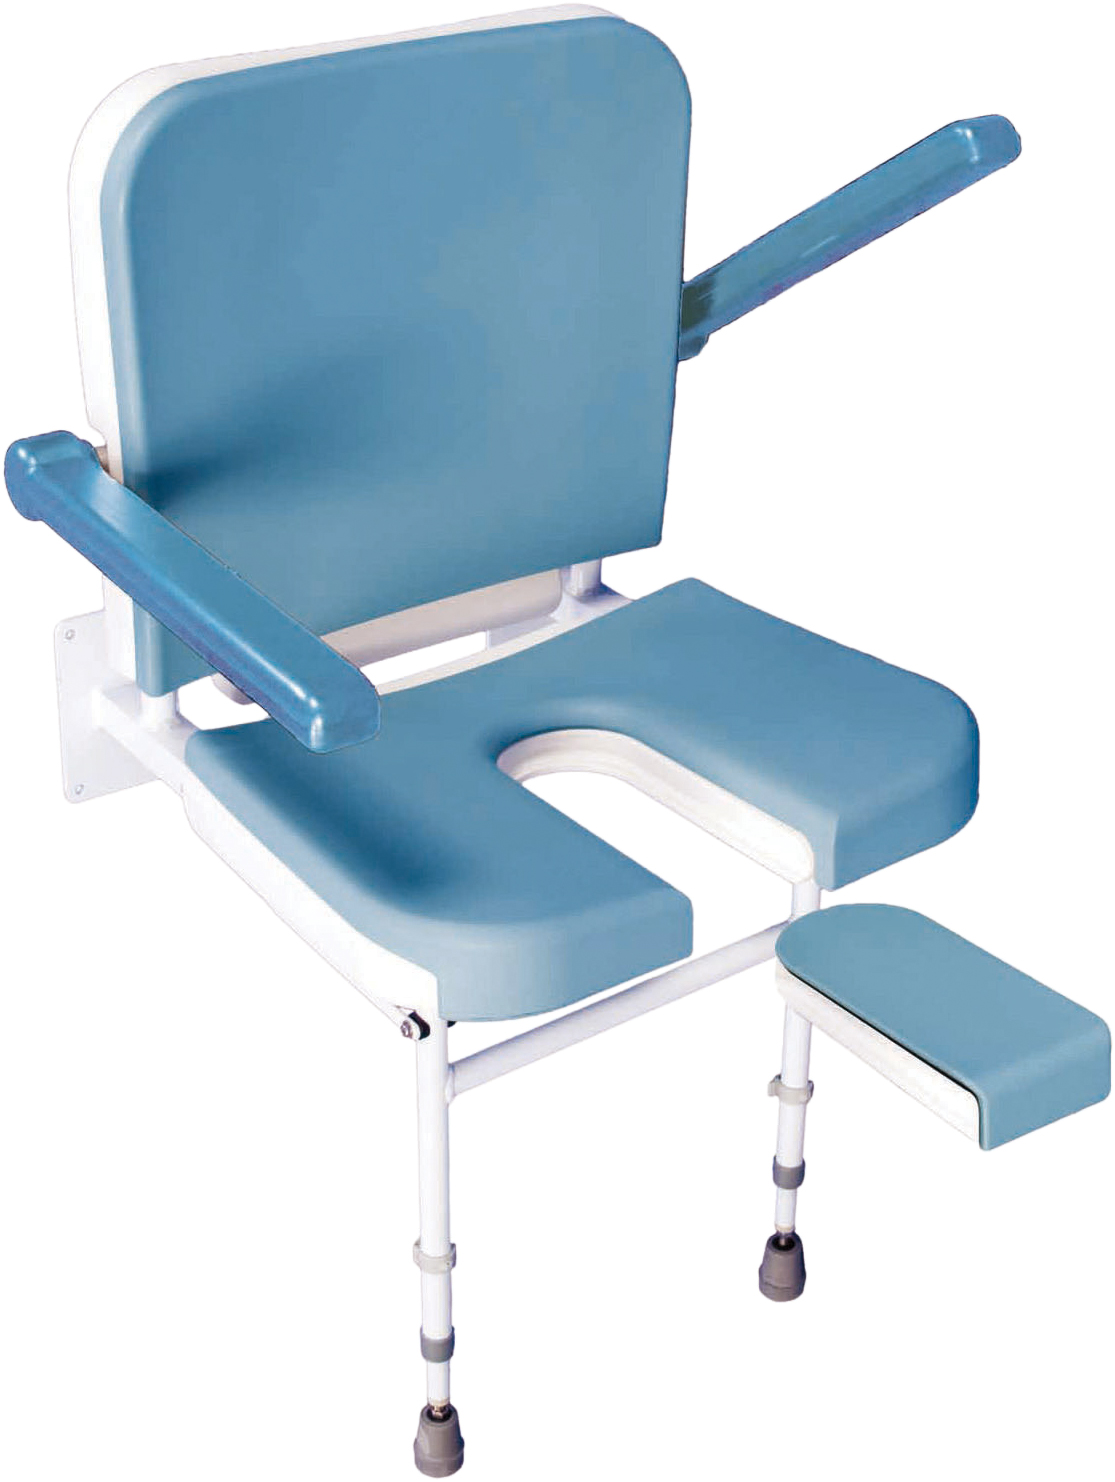 Duo Deluxe 2 in 1 Shower Seat Aidapt Mobility Aids & Independent ...